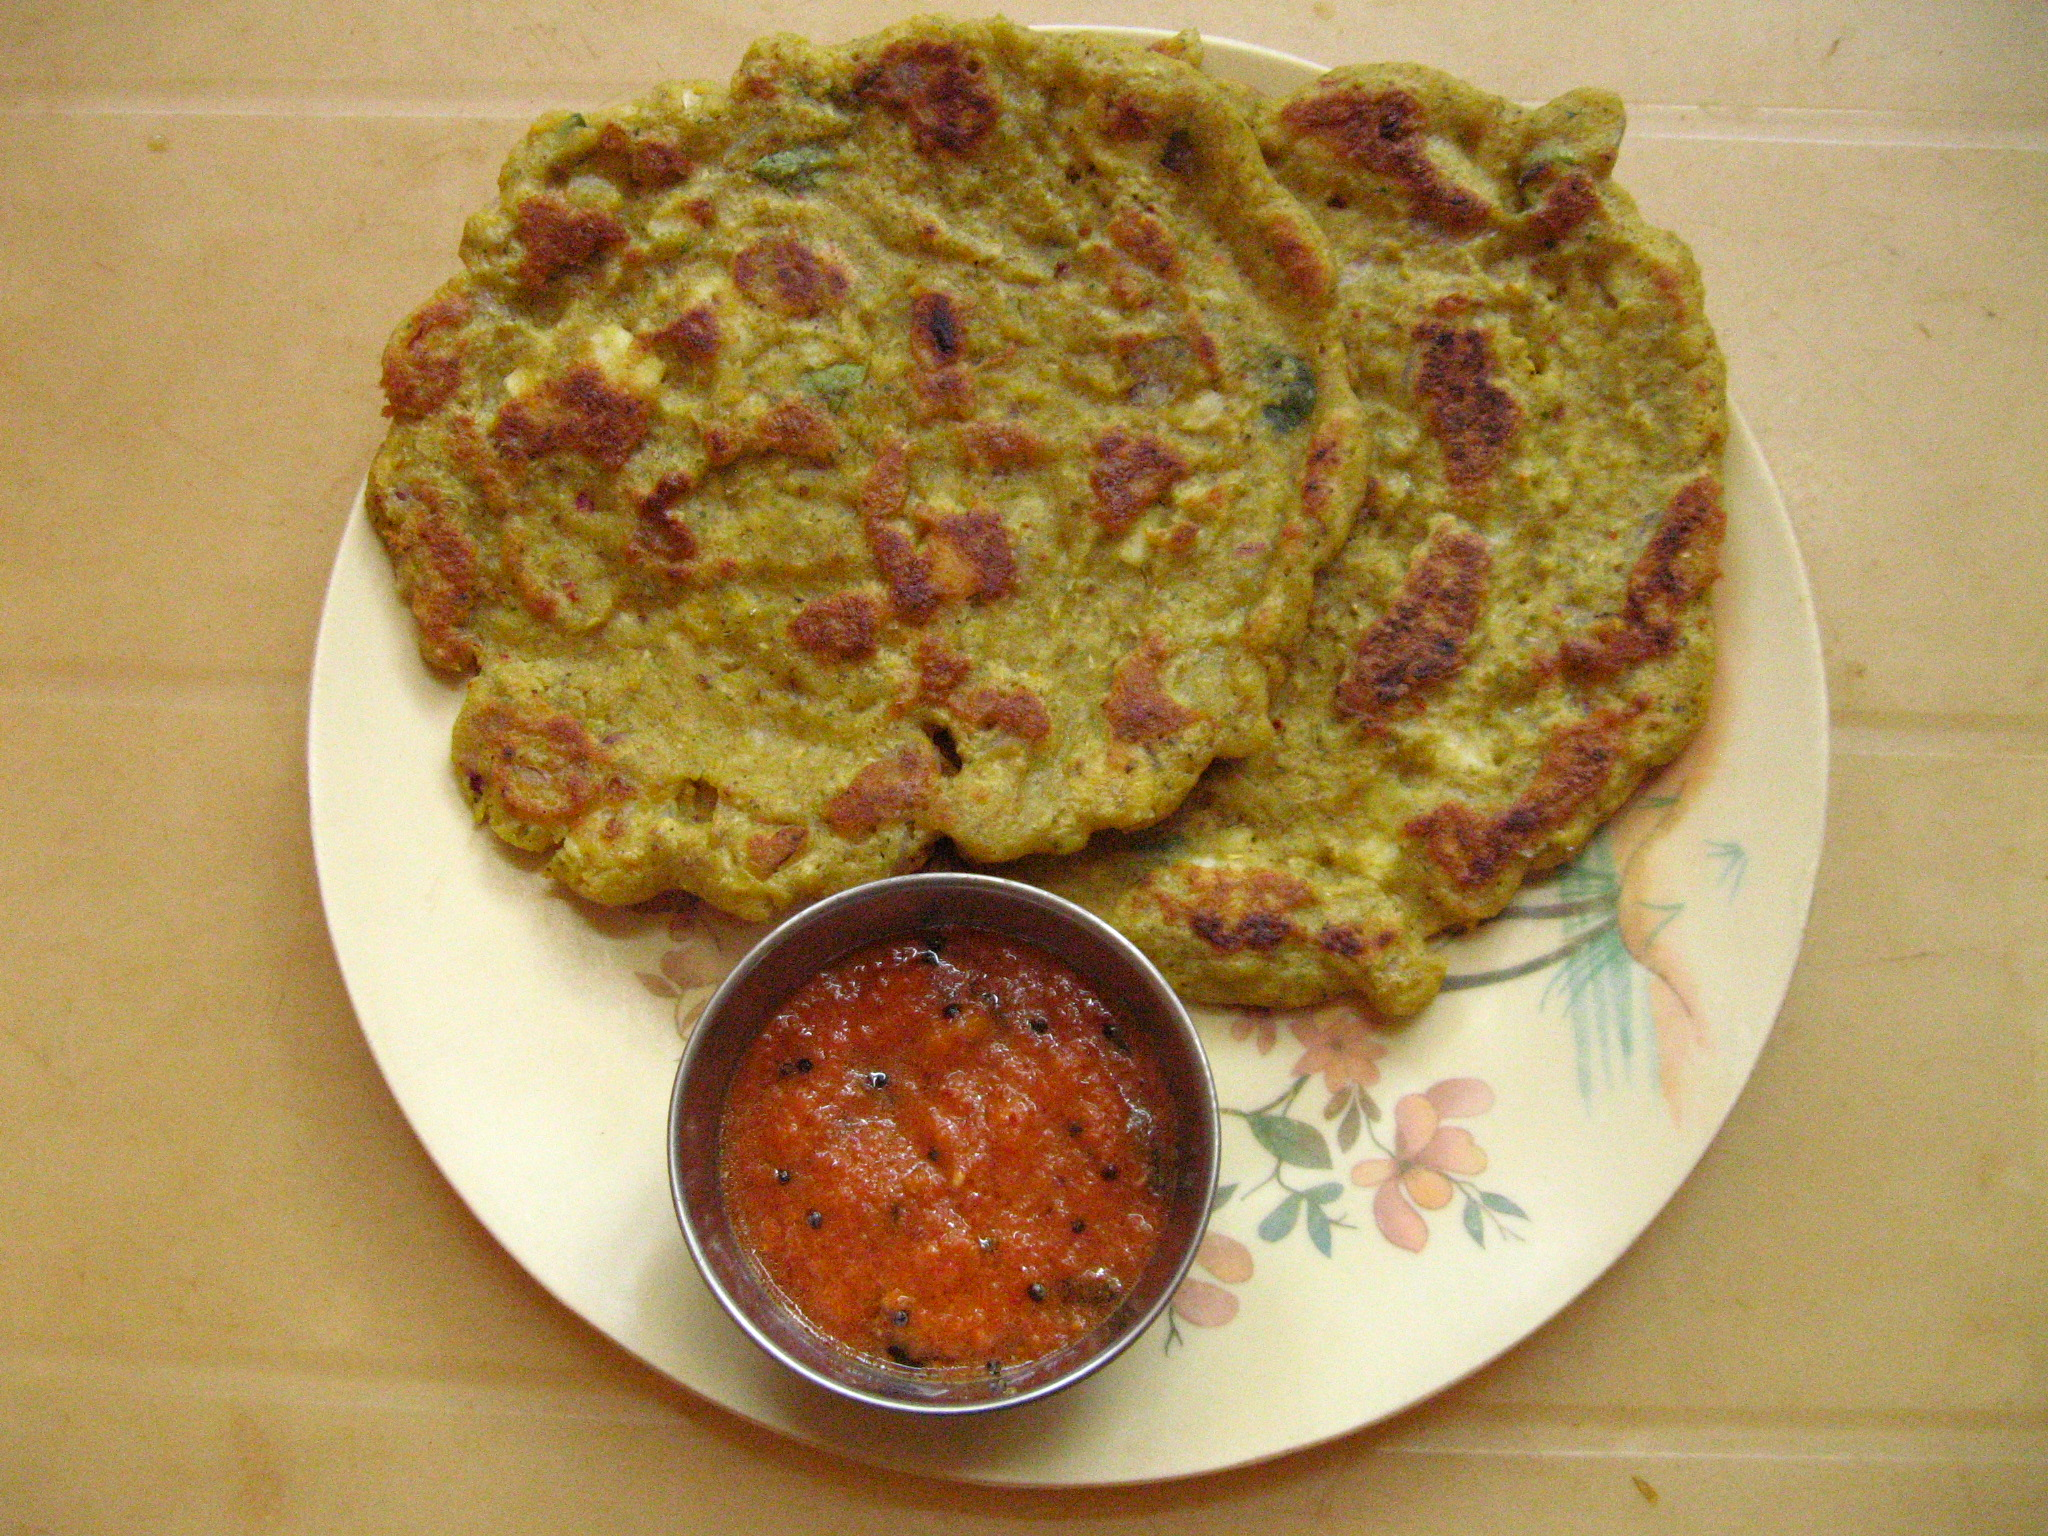 Picture of Adai With Mixed Millet and Pulses